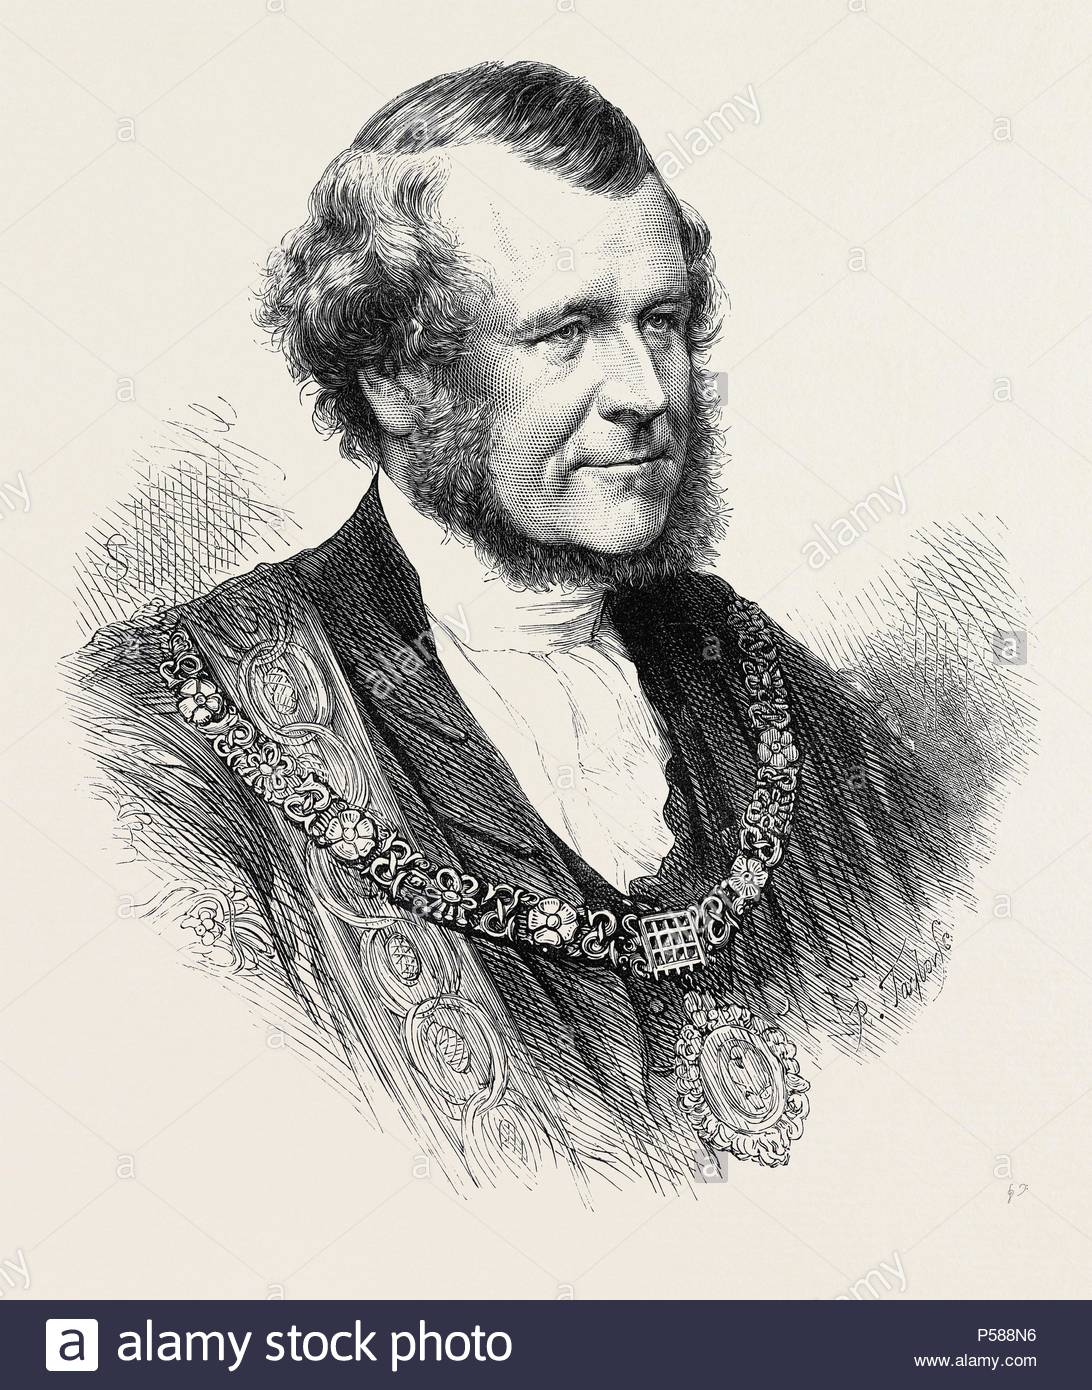 THE RIGHT HON. SILLS JOHN GIBBONS, THE NEW LORD MAYOR OF LONDON, 1871. - Stock Image